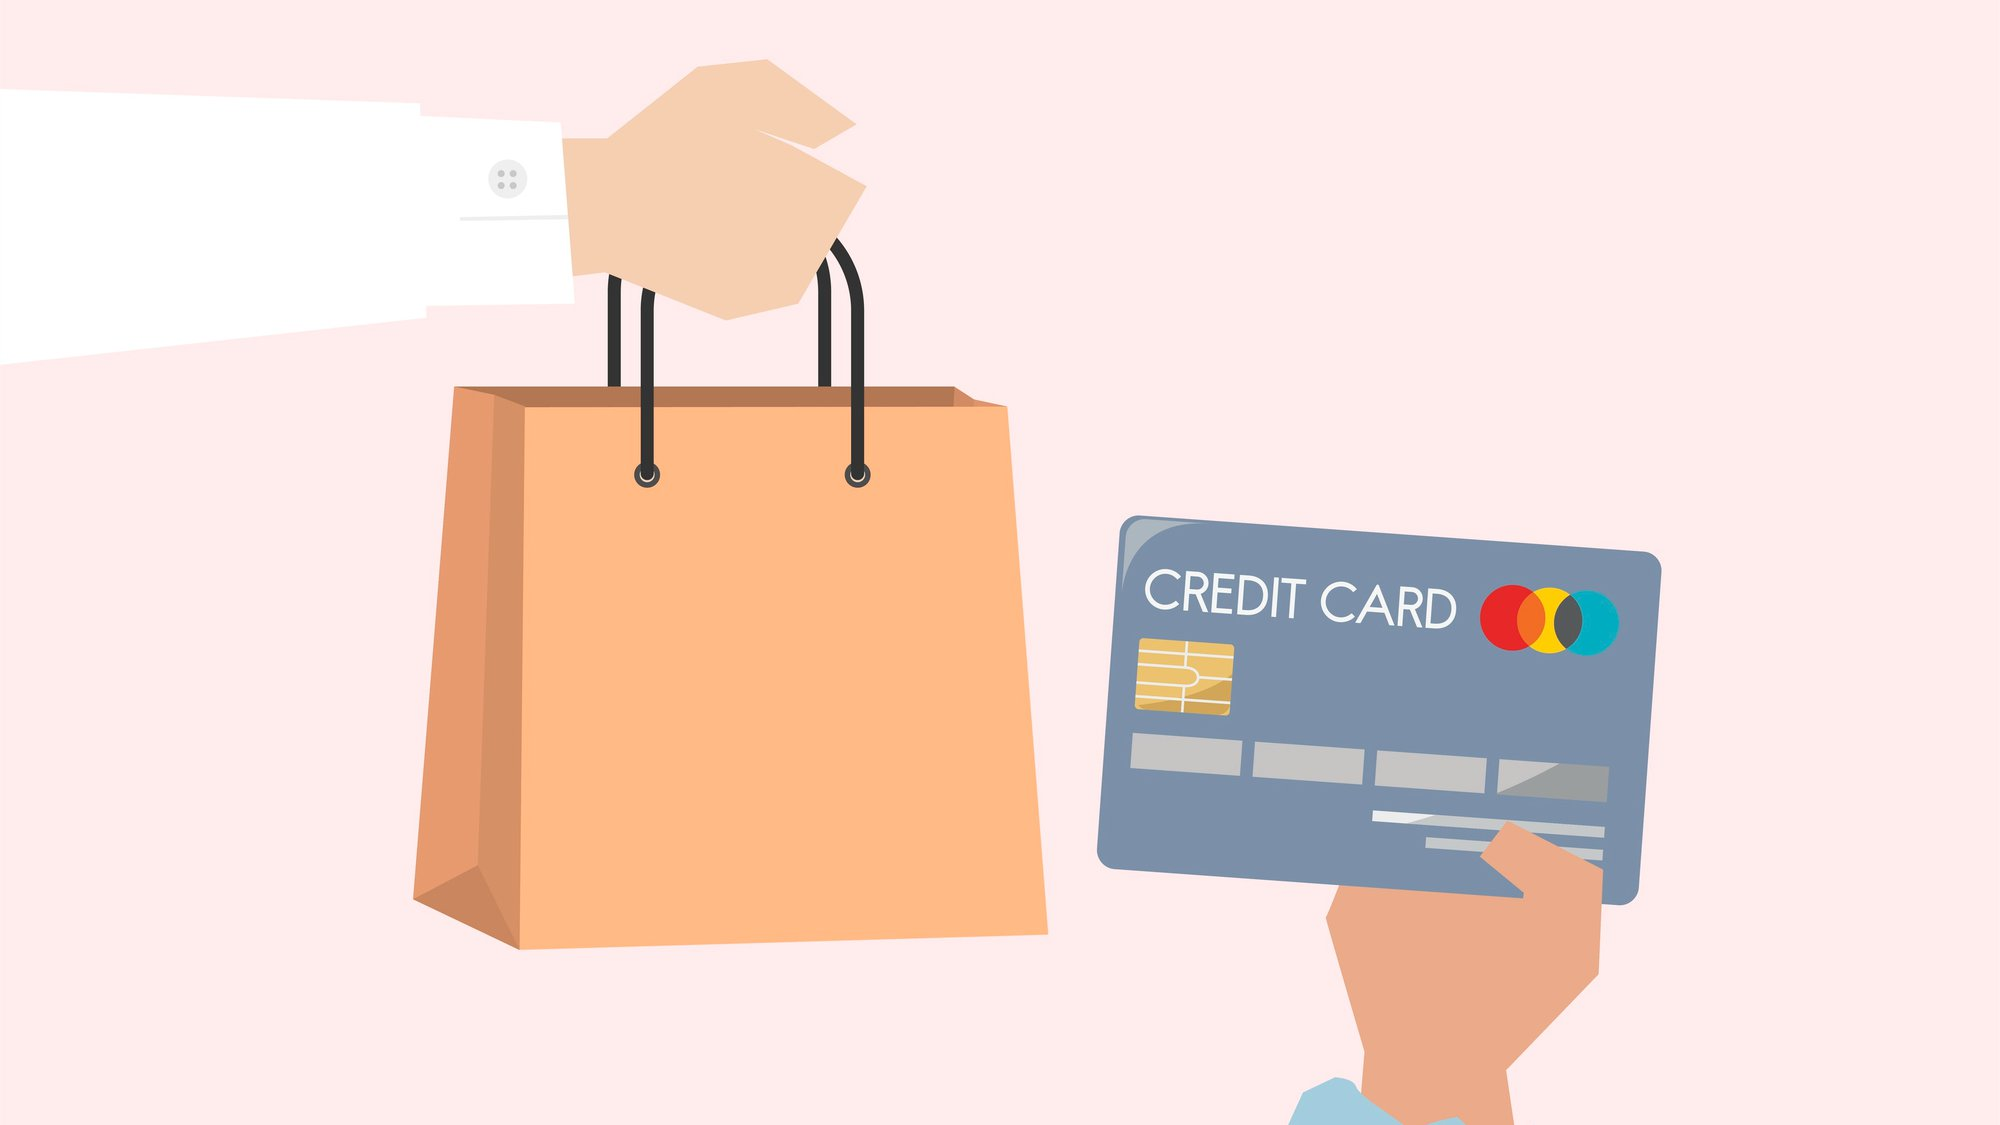 ecommerce shopper buying with a credit card illustration